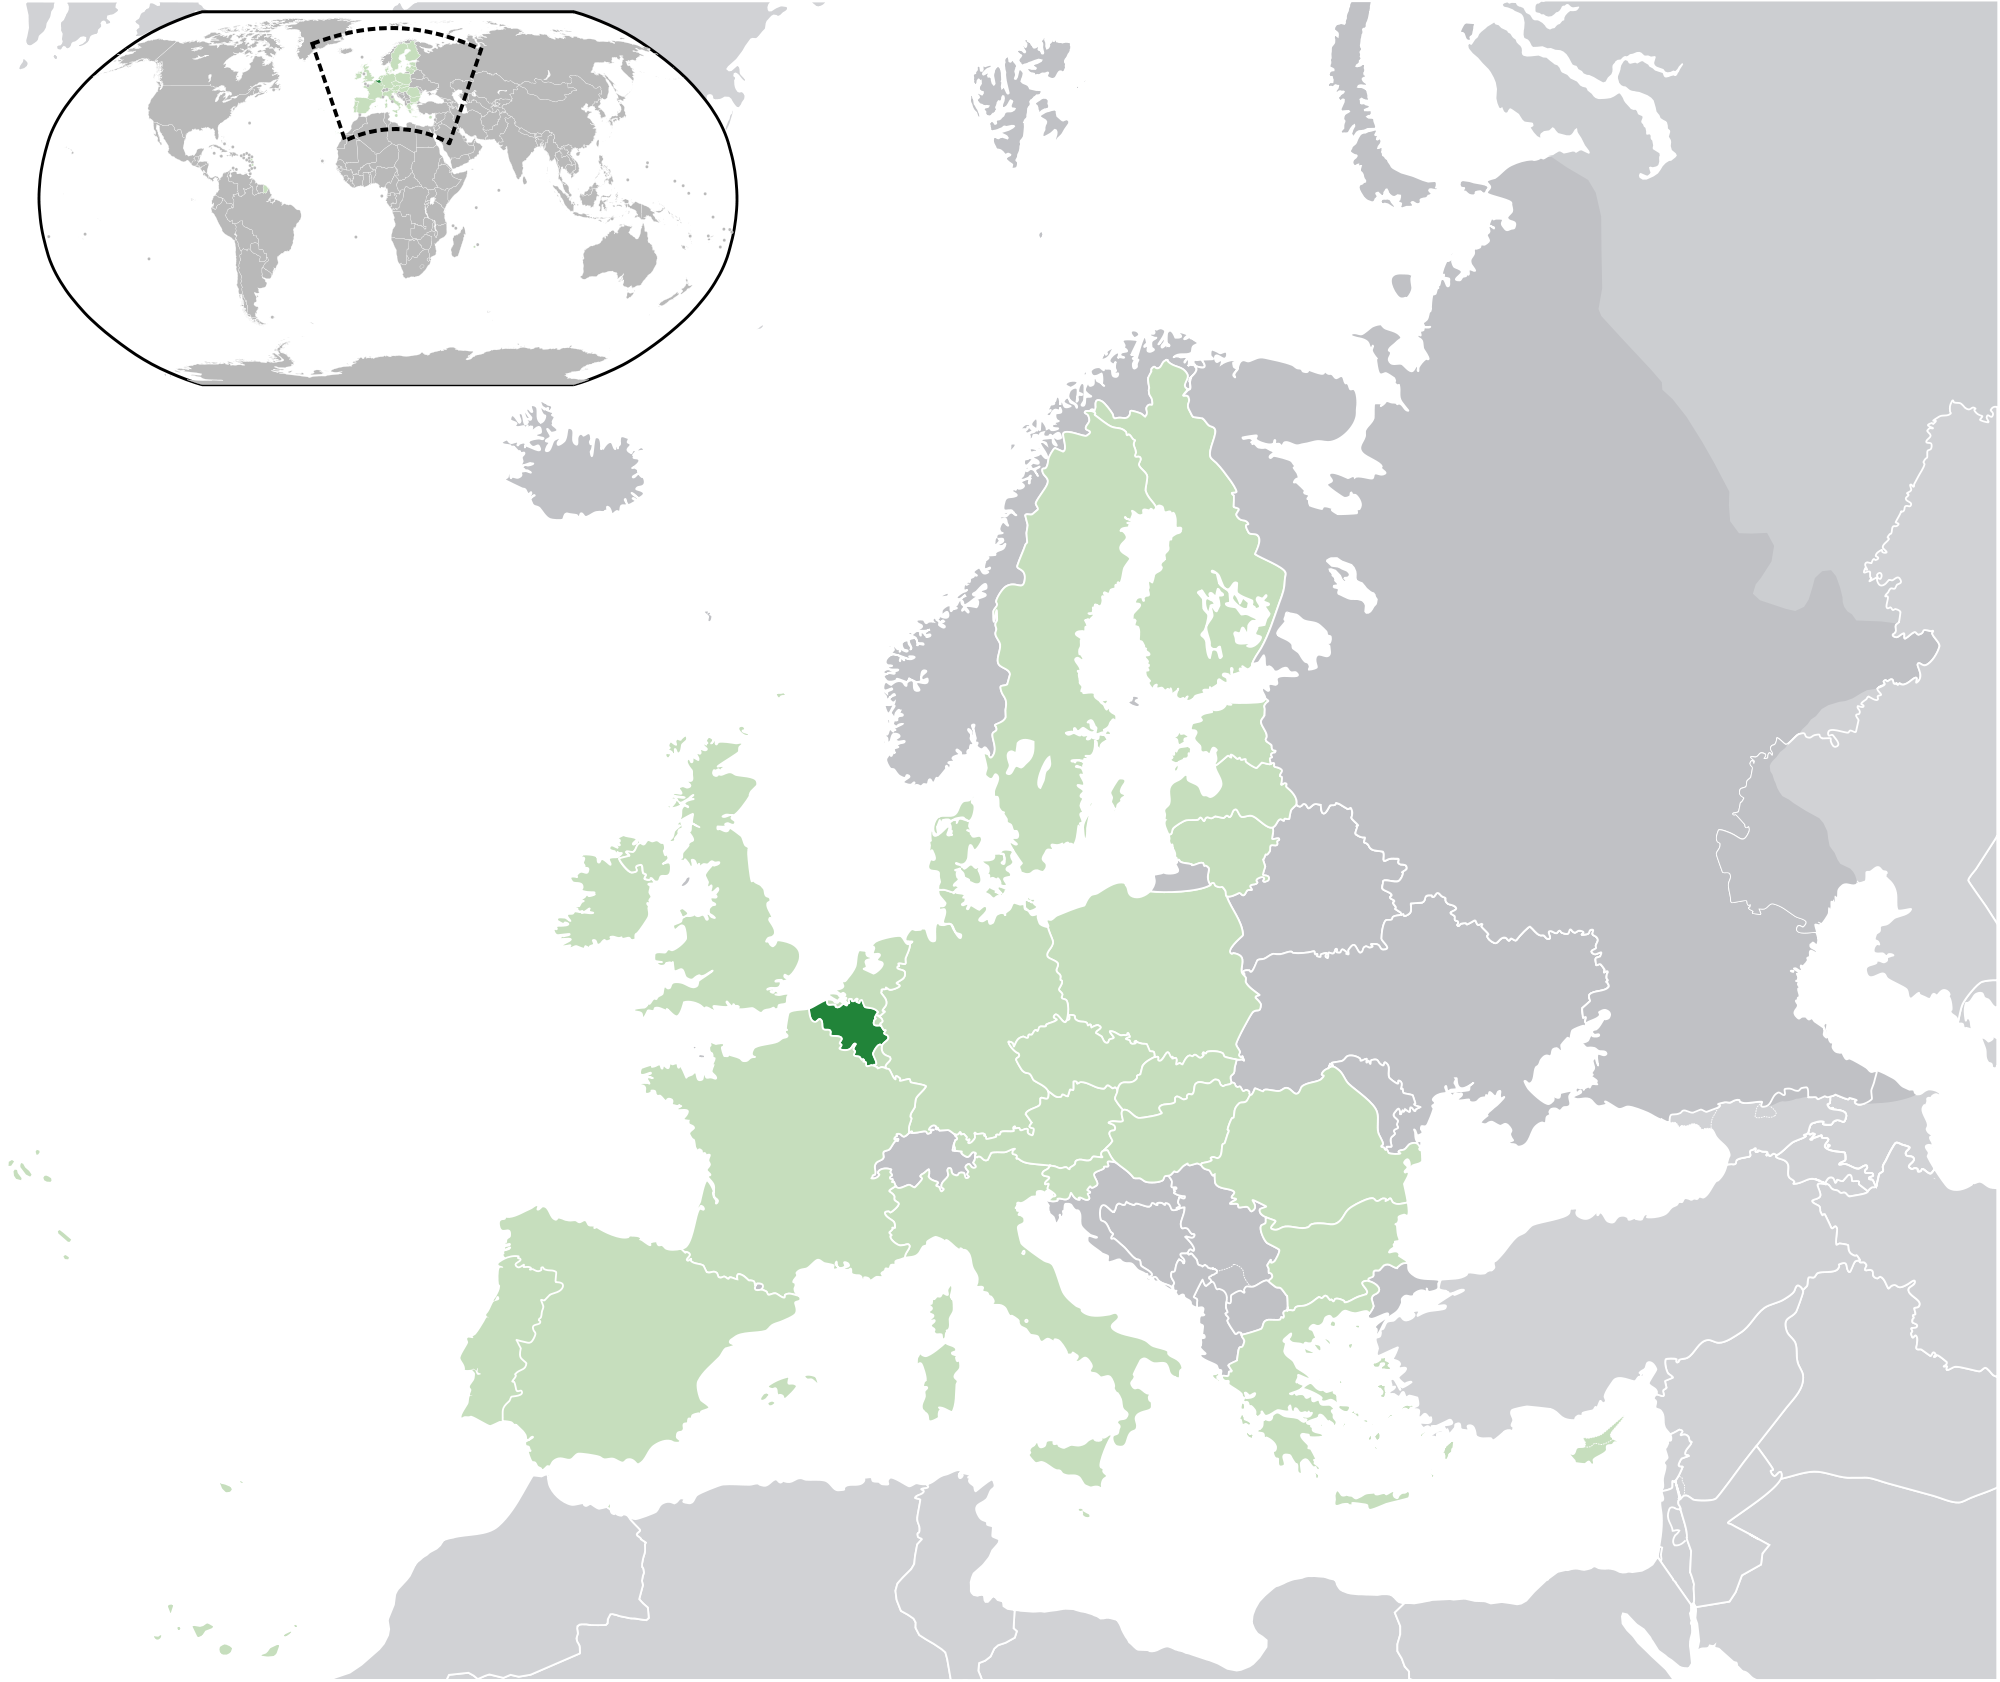 Location of the Belgium in the World Map – Location of Belgium on World Map